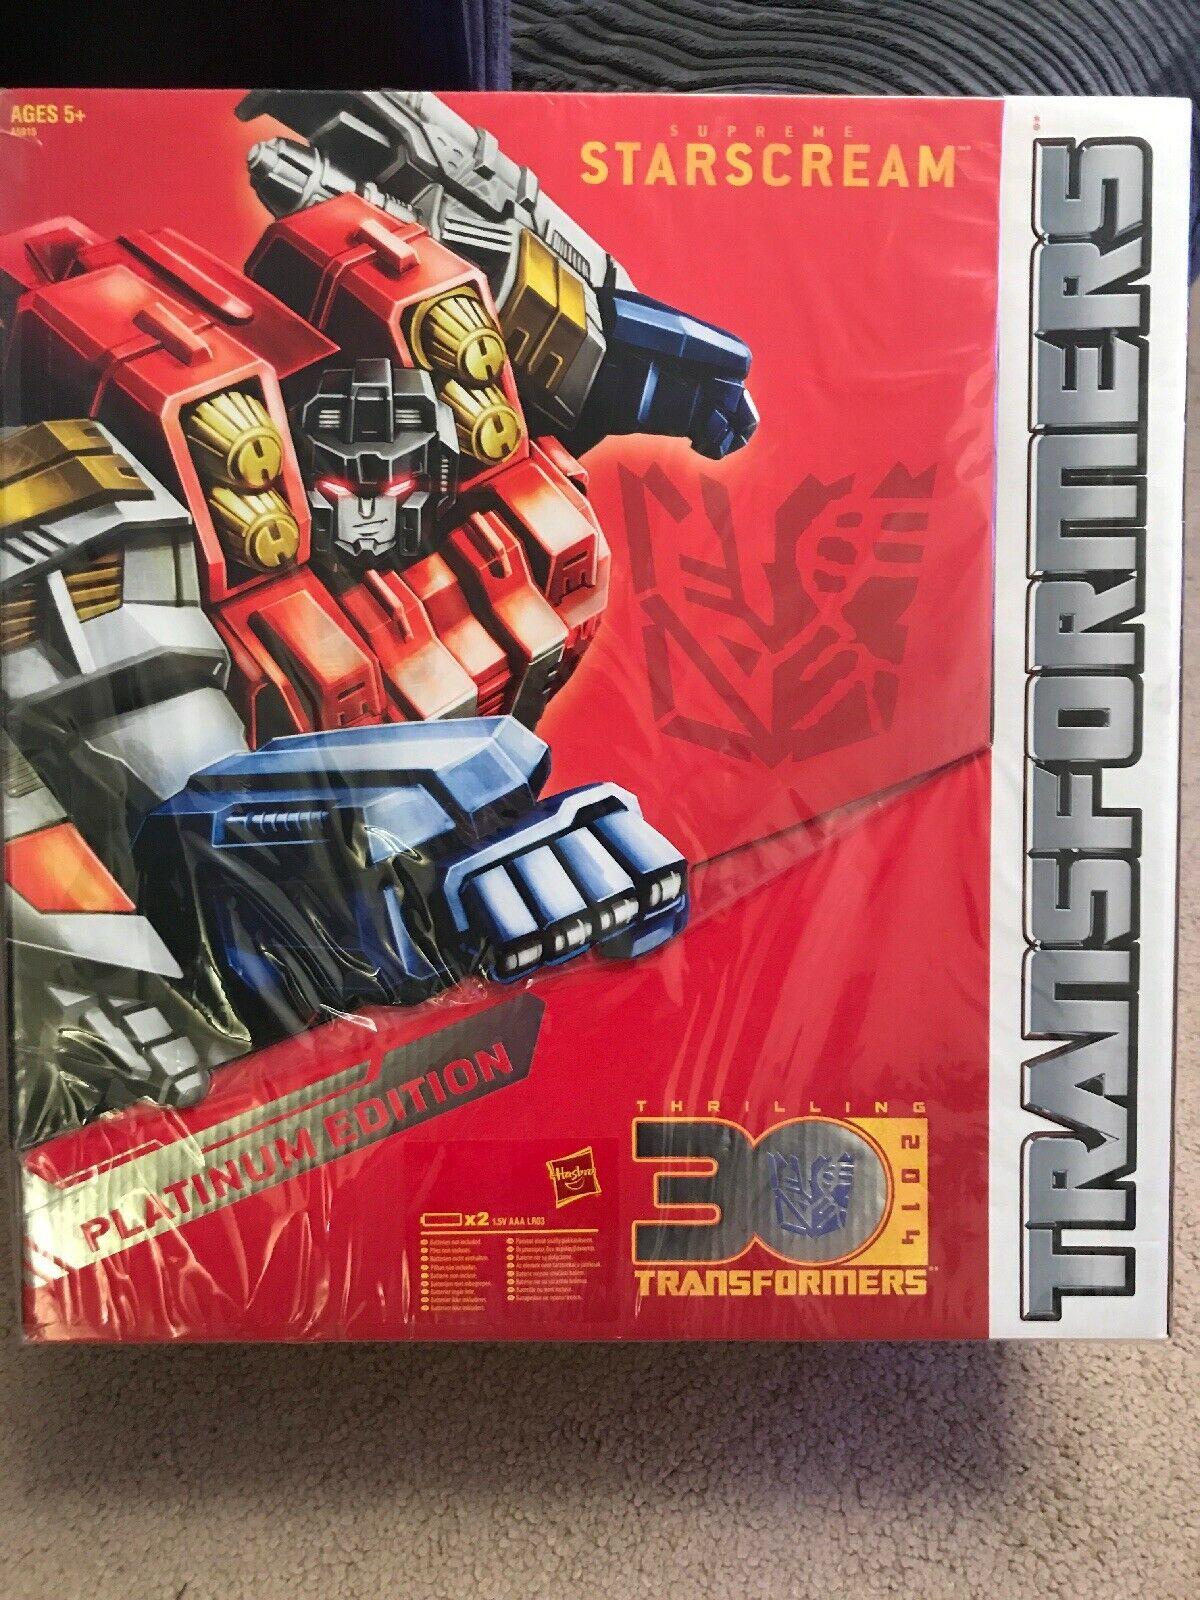 TRANSFORMERS. - YEAR OF THE HORSE - SUPREME STARSCREAM - Brand New   Sealed